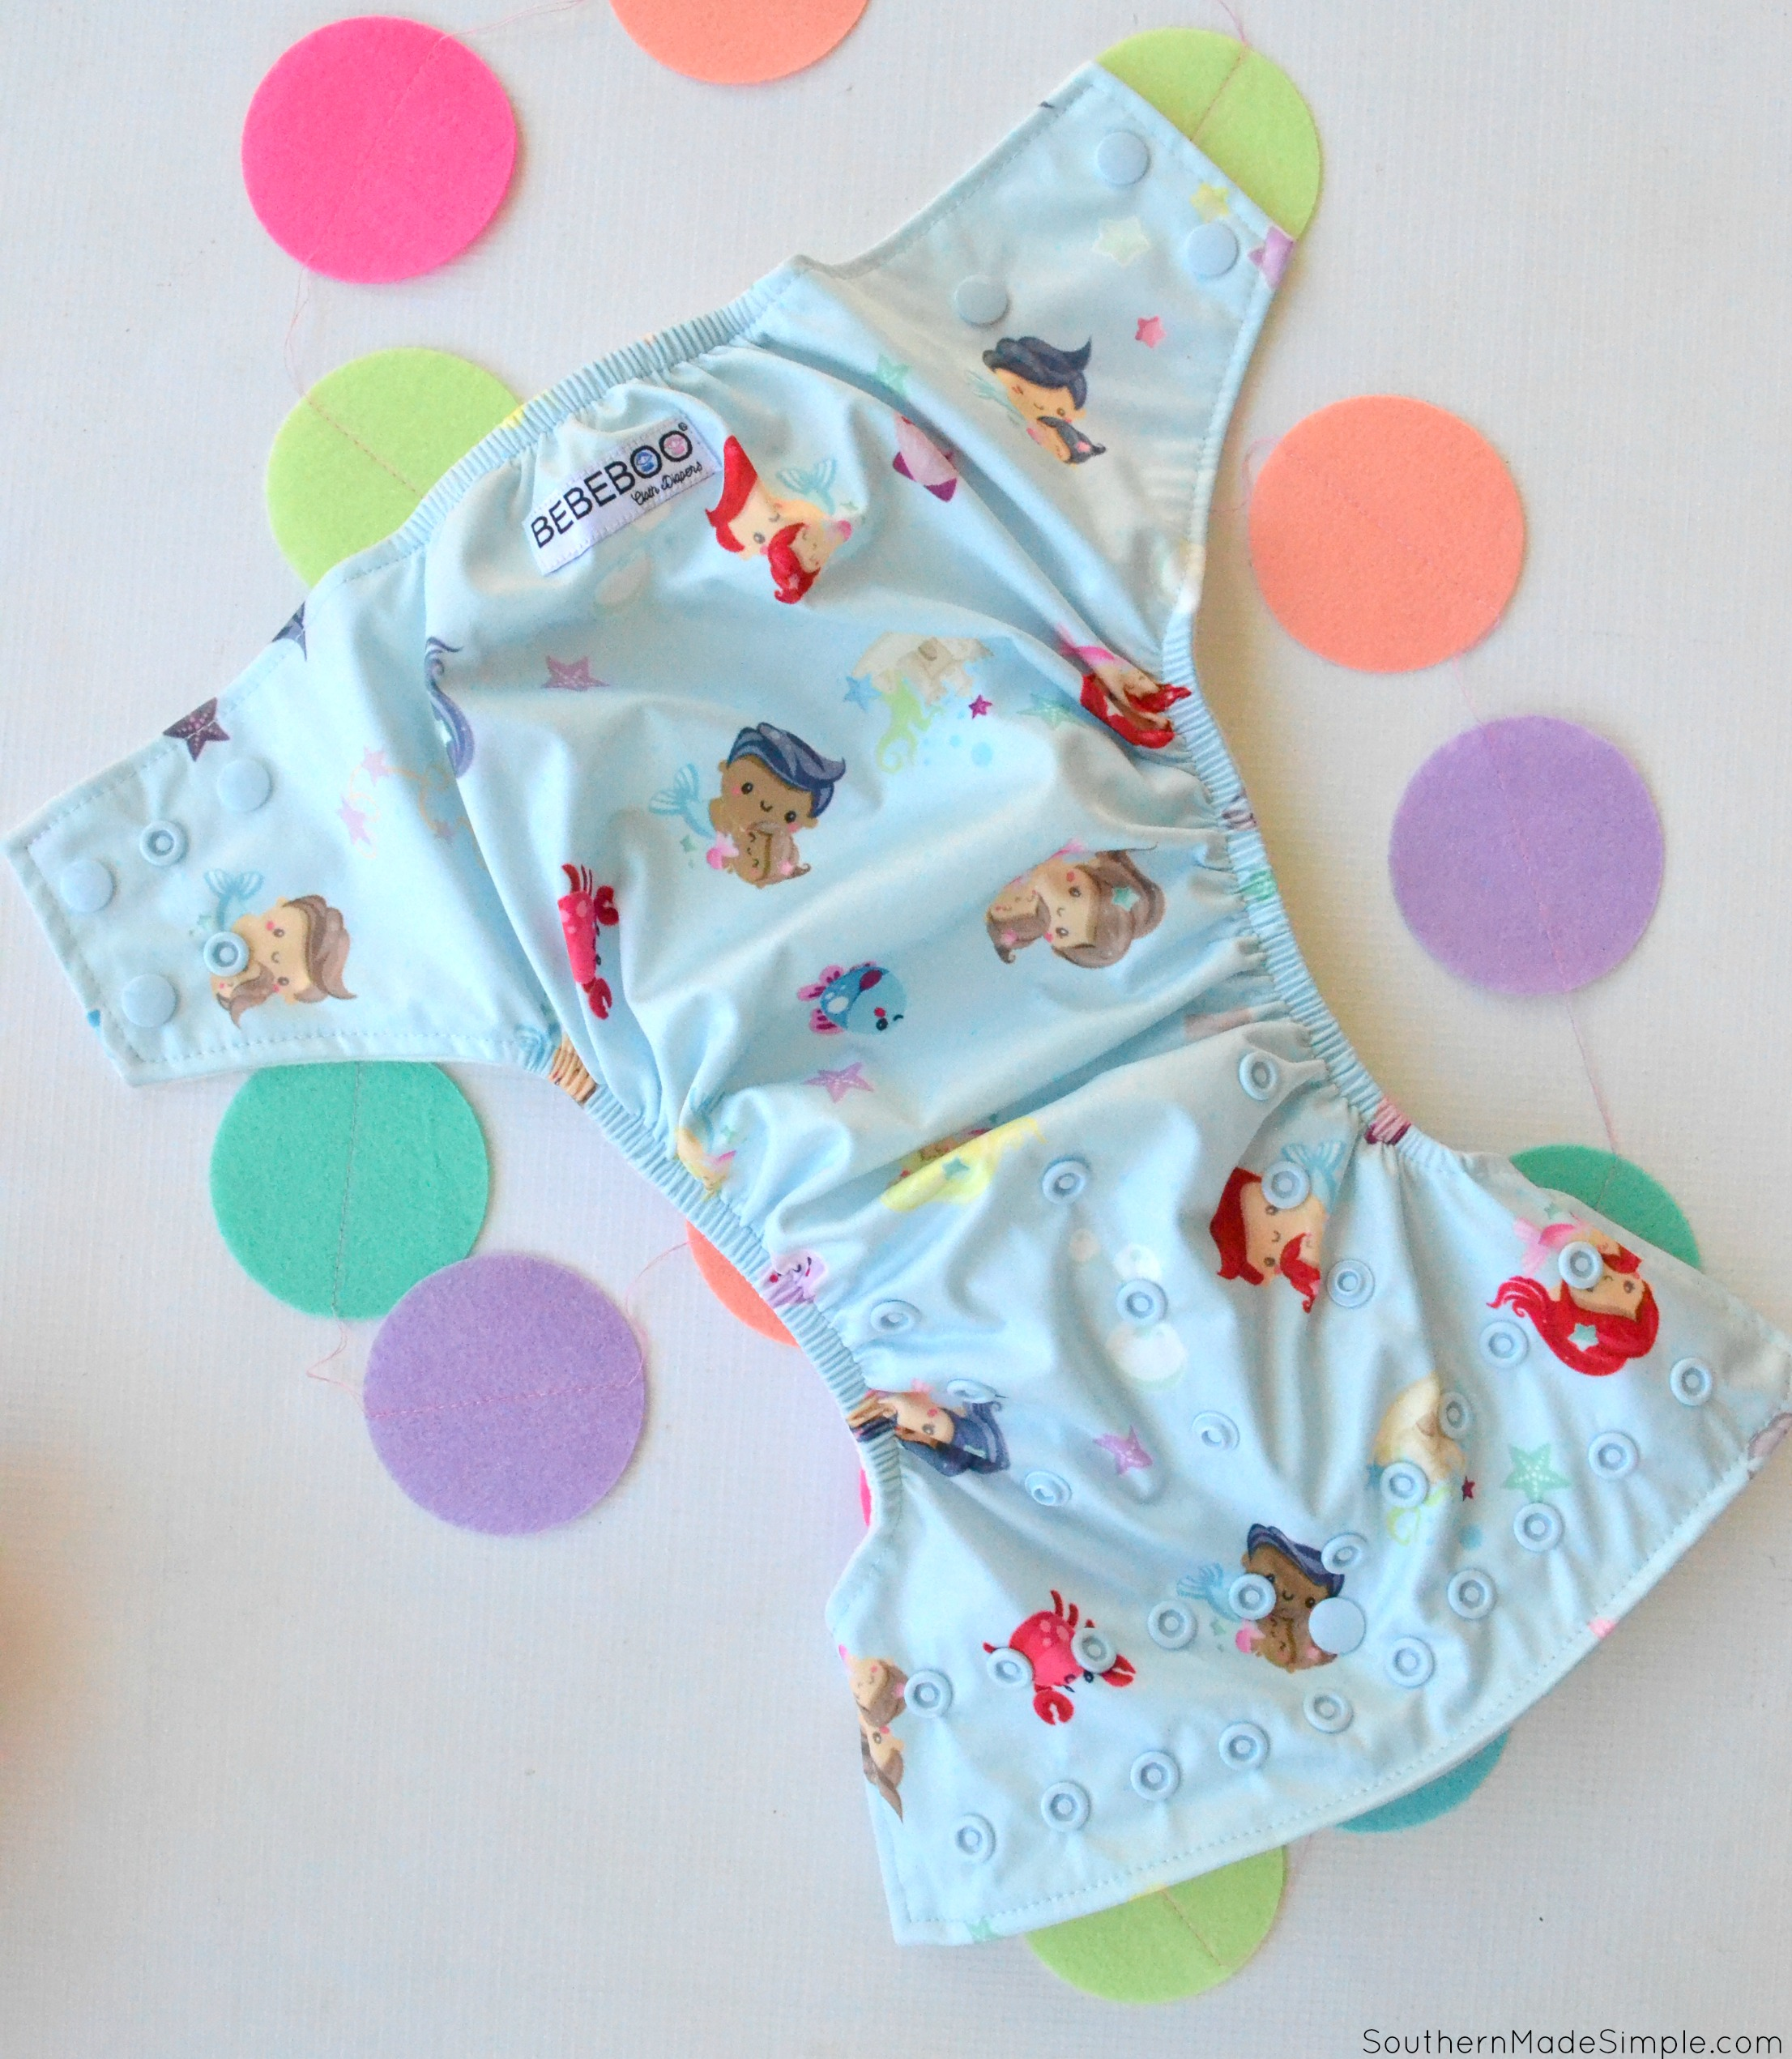 BeBeBoo Cloth Diaper Review